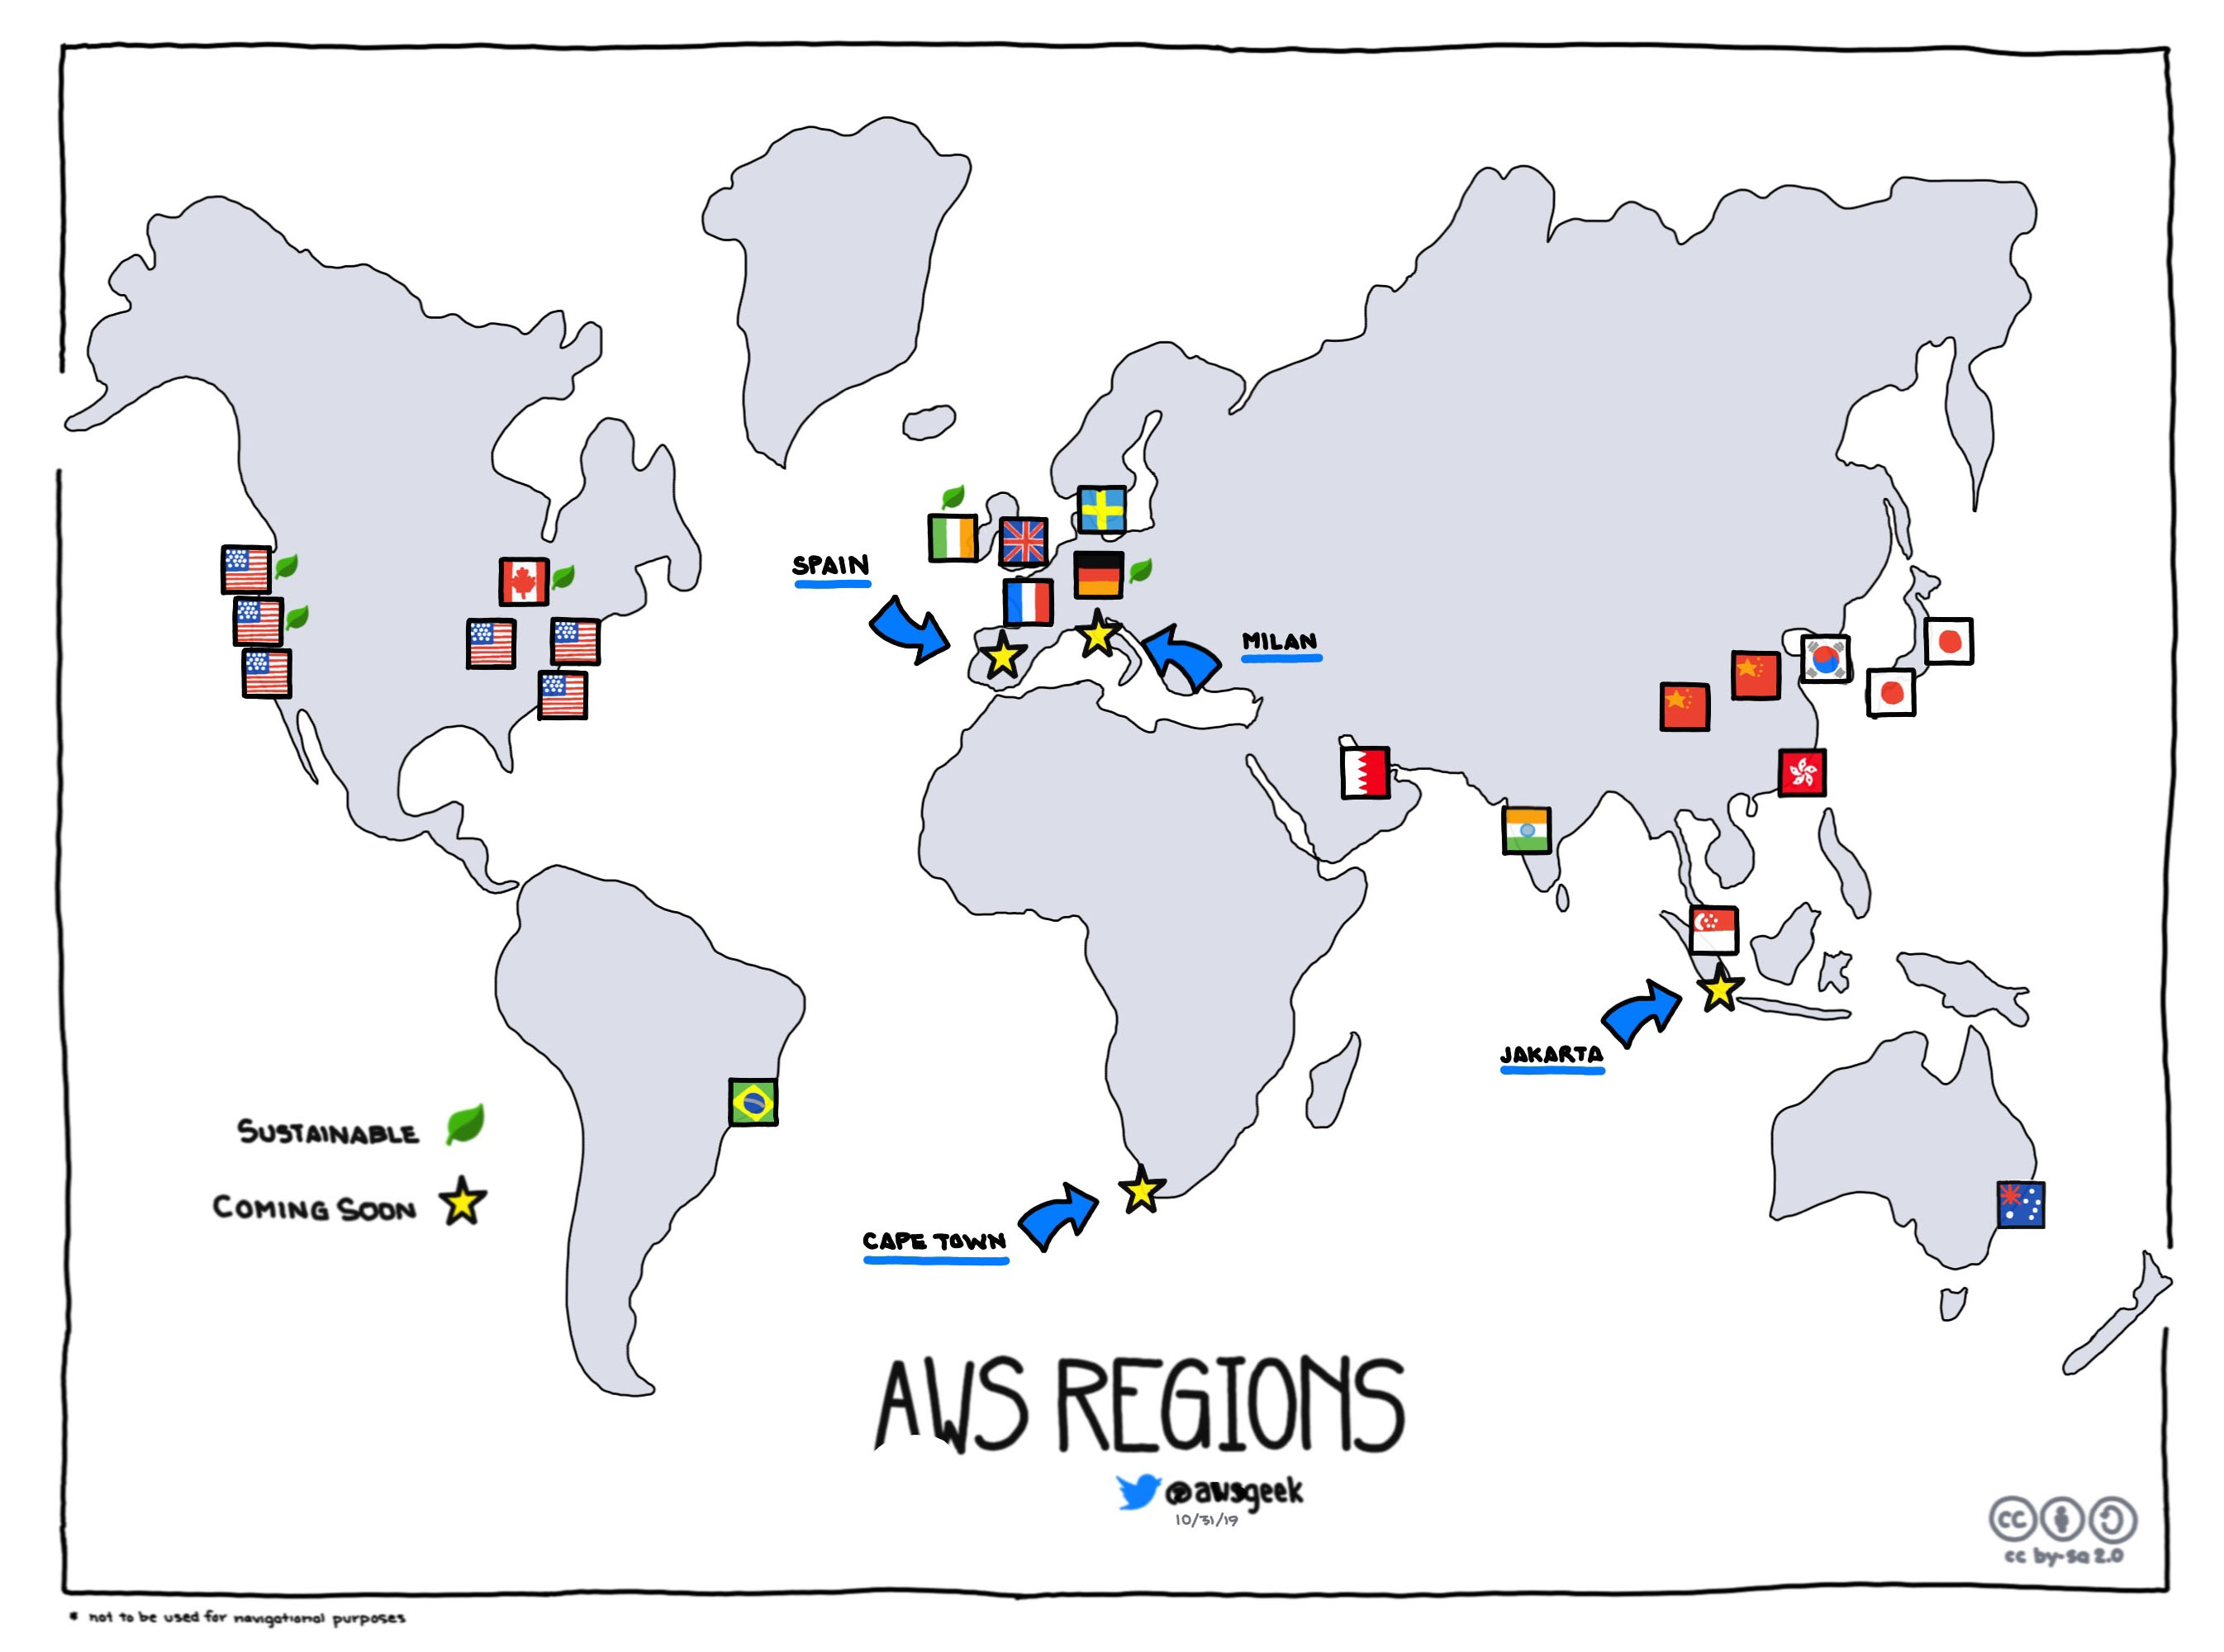 AWS regions. The green leaf means green power. Source: https://www.awsgeek.com/AWS-Regions/index.html